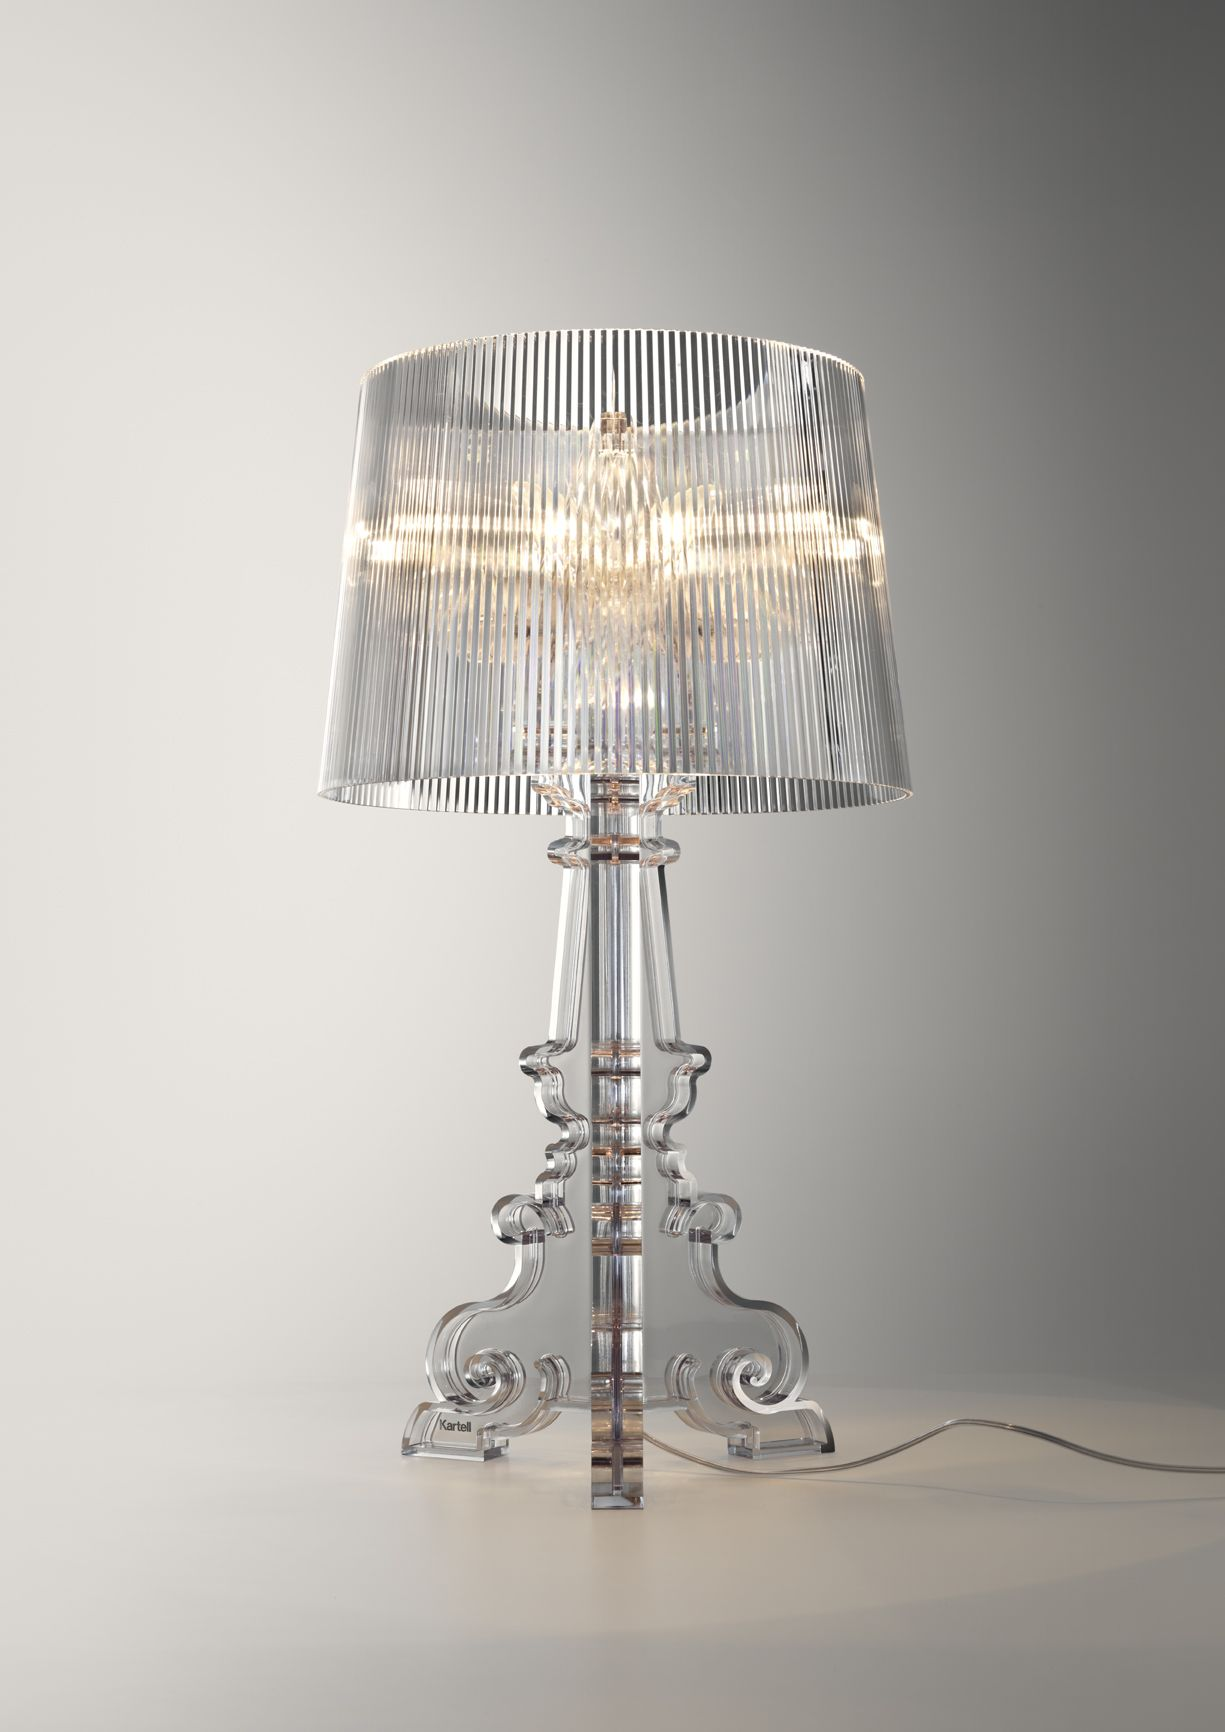 Bourgie Lampe Bourgie Lamp By Ferruccio Laviani For Romantic Spirits Kartell